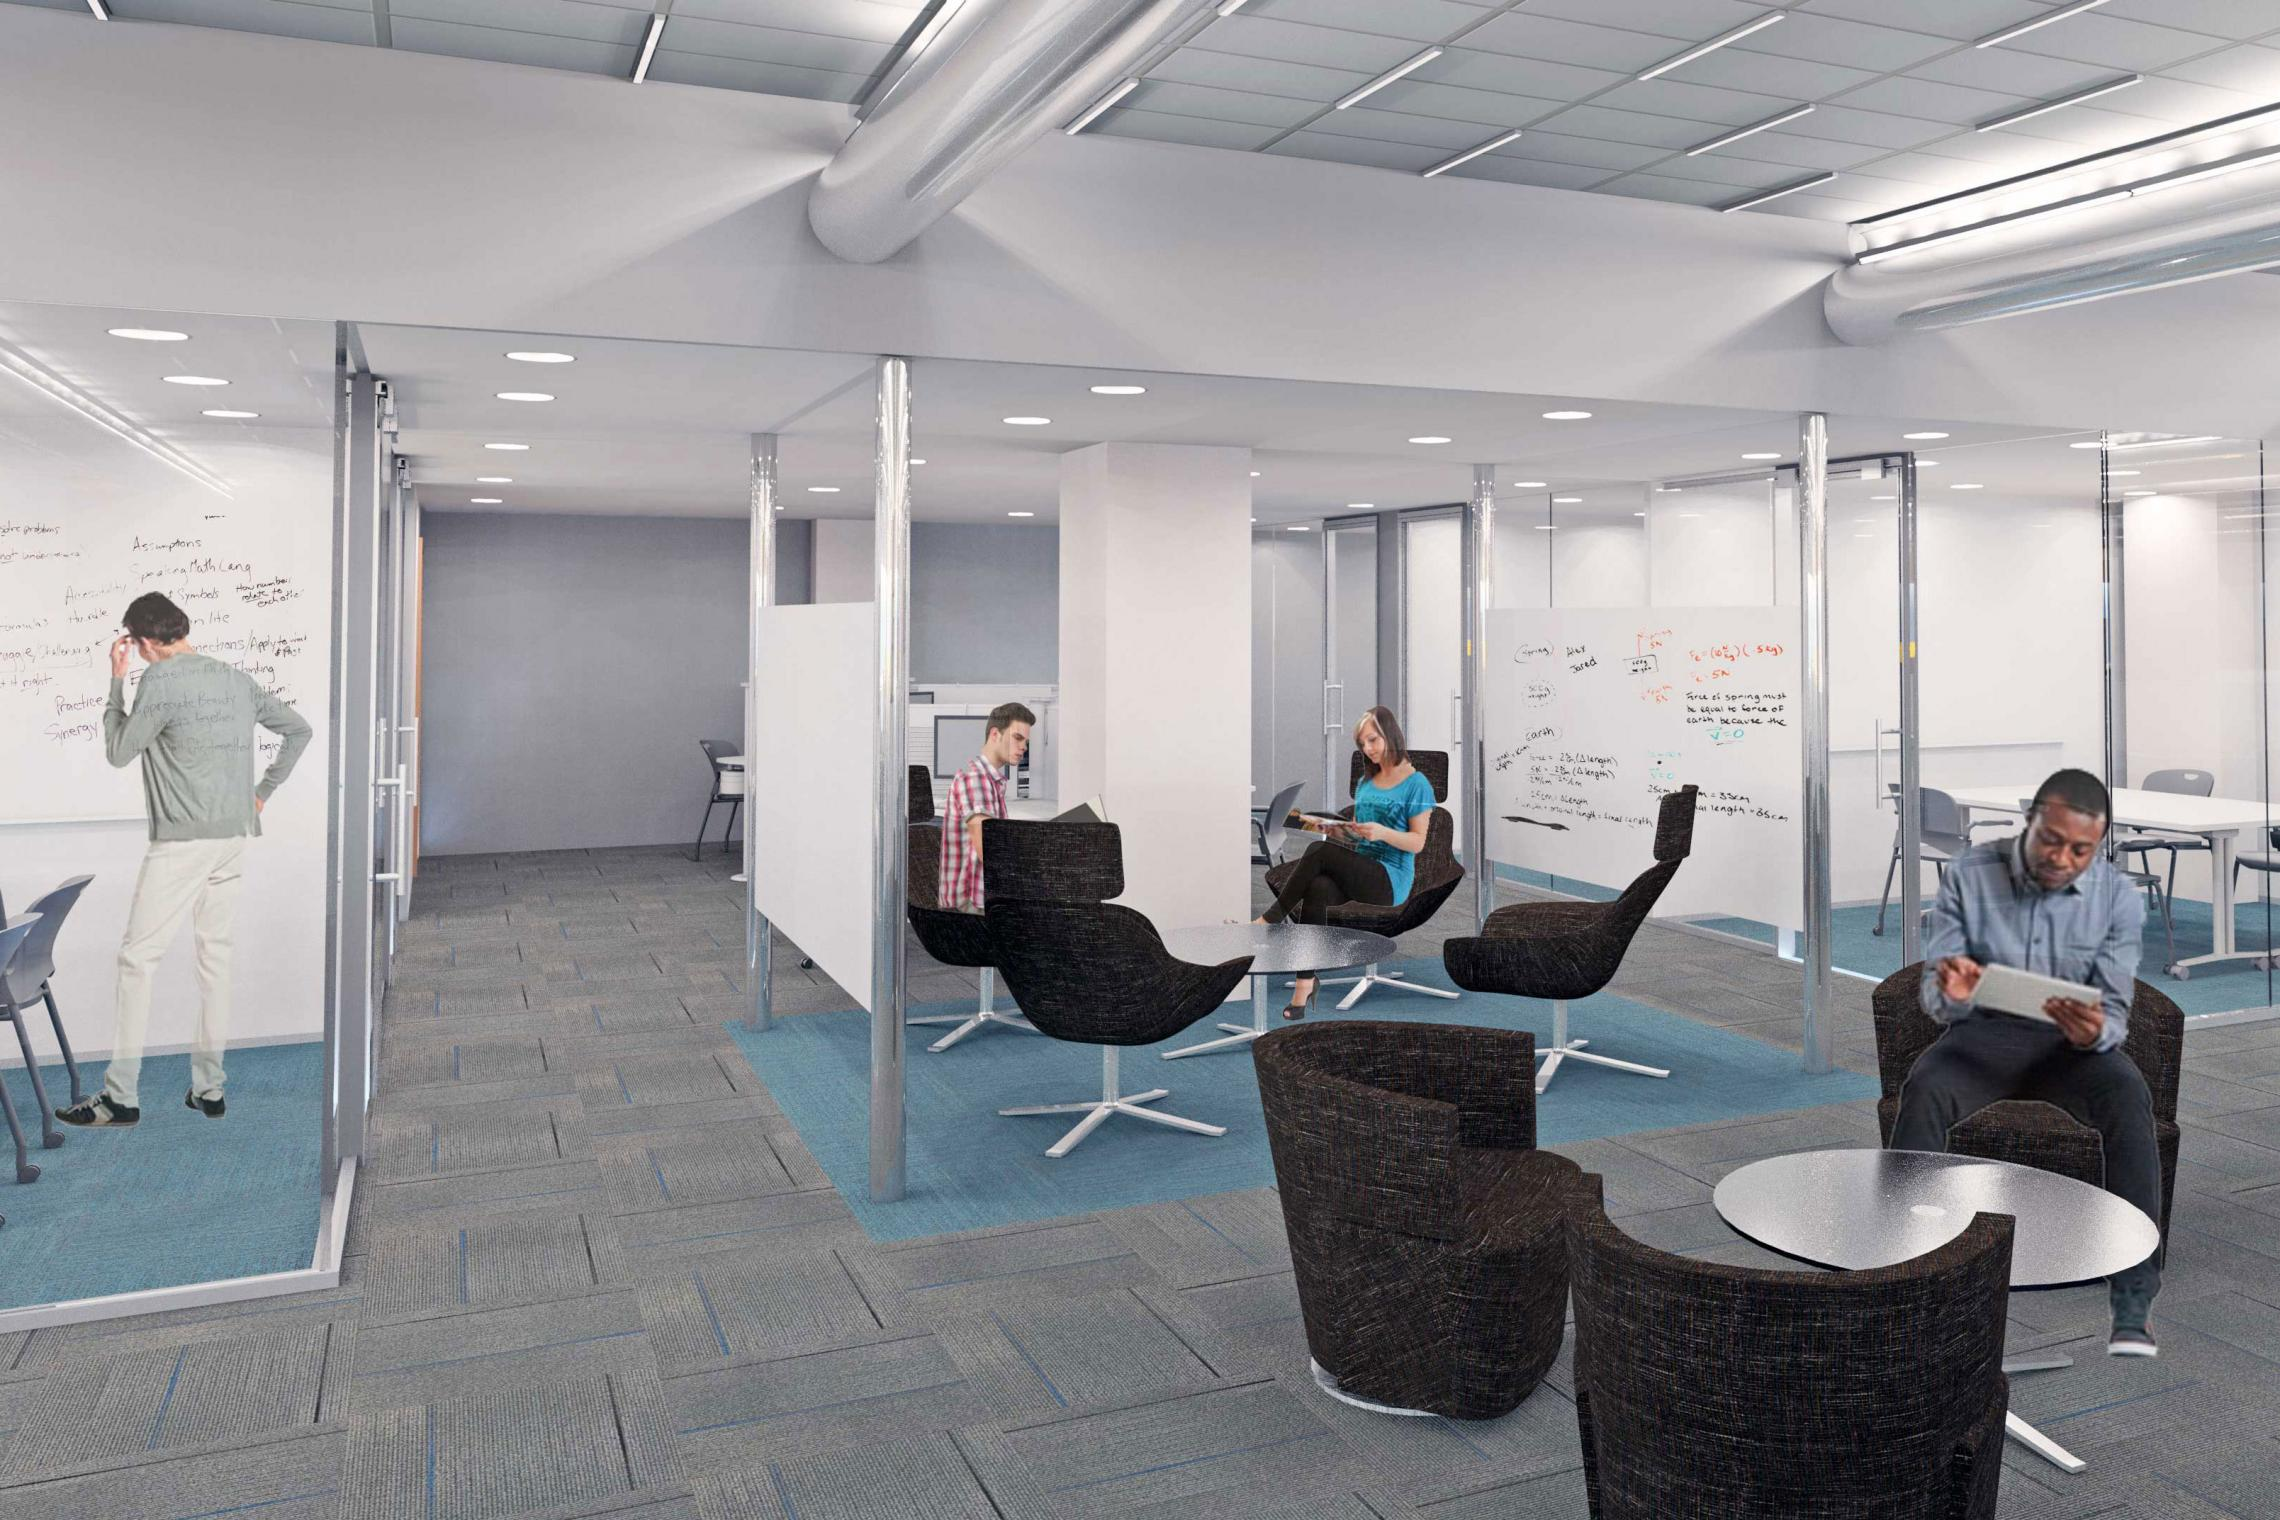 A rendering of public study areas in the planned advising center, available for one-on-one meetings, tutoring and studying.